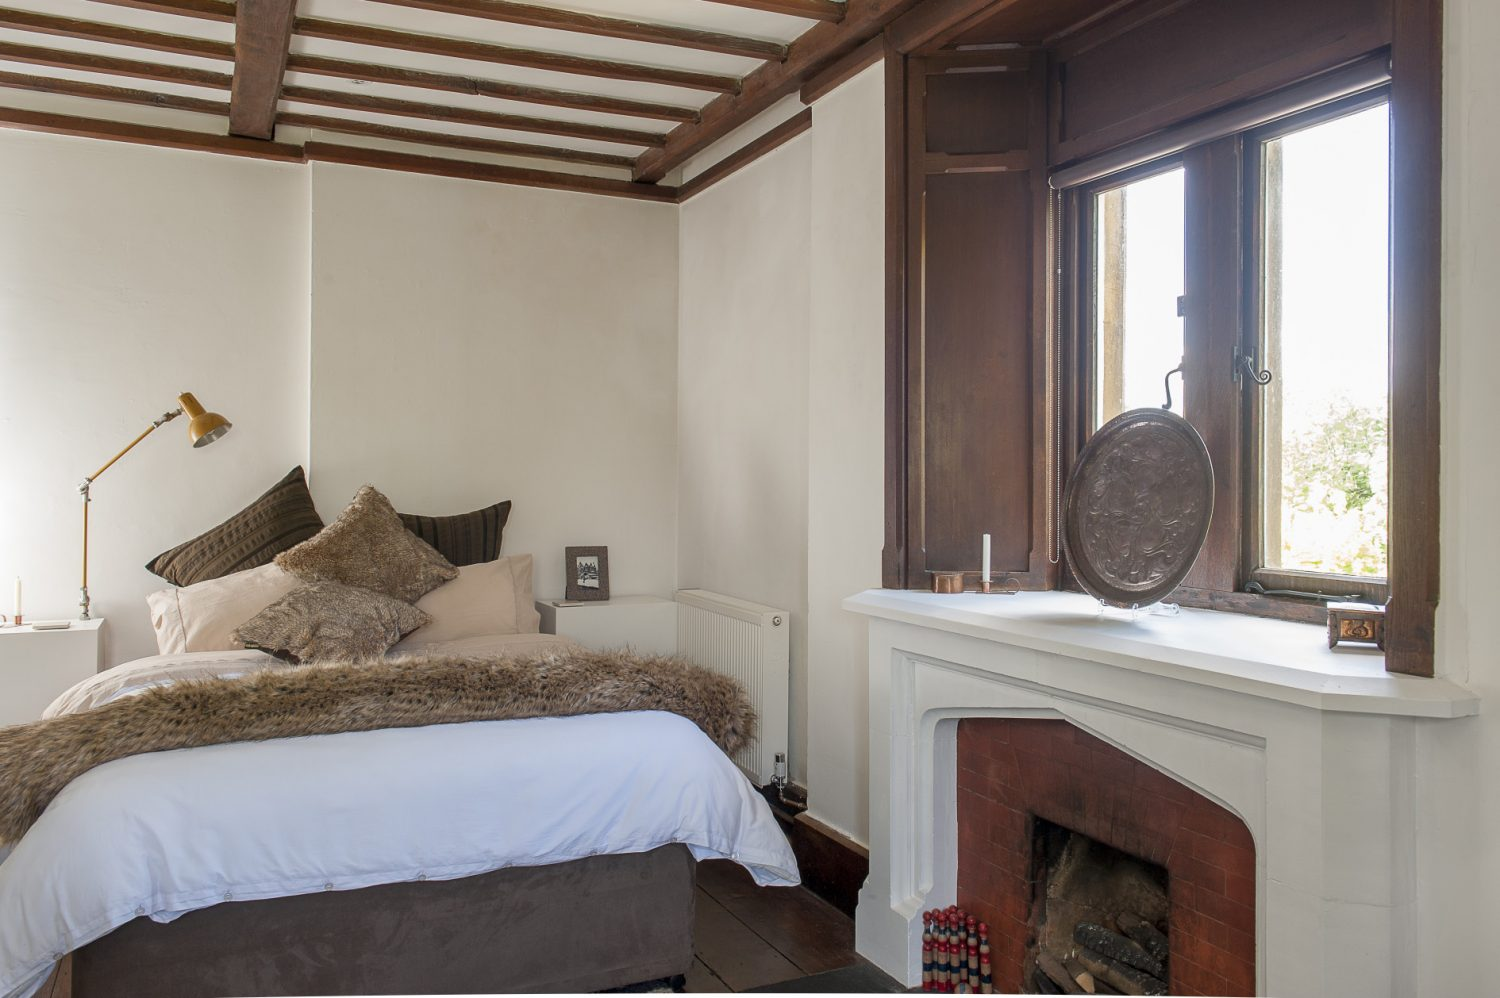 The beamed bedroom in the B&B suite had been at some point remodelled in Arts and Crafts style and Dan has run with this adding a further dimension with touches that again underline his creativity and talent as a designer